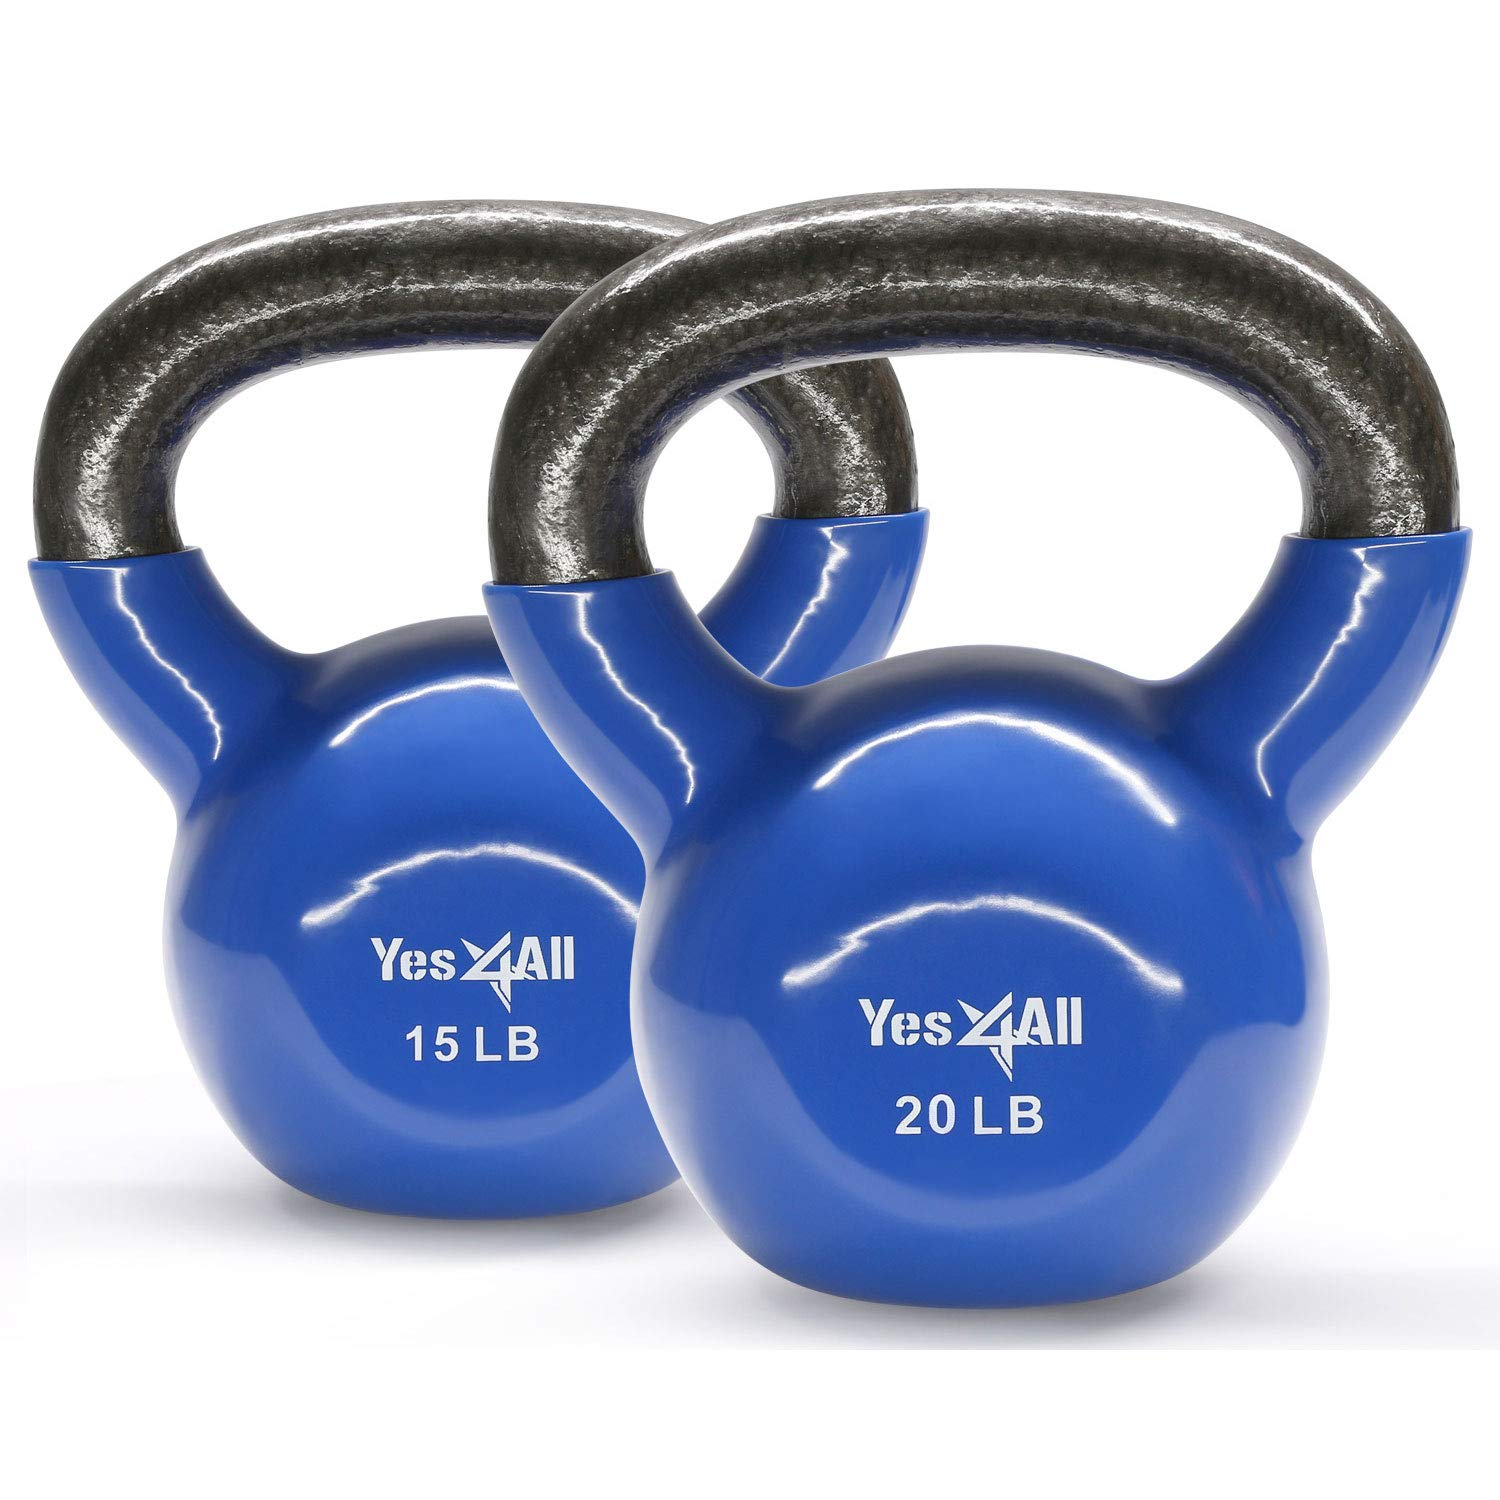 Yes4All Combo Vinyl Coated Kettlebell Weight Sets - Great for Full Body Workout and Strength Training - Vinyl Kettlebells 15 20 lbs by Yes4All